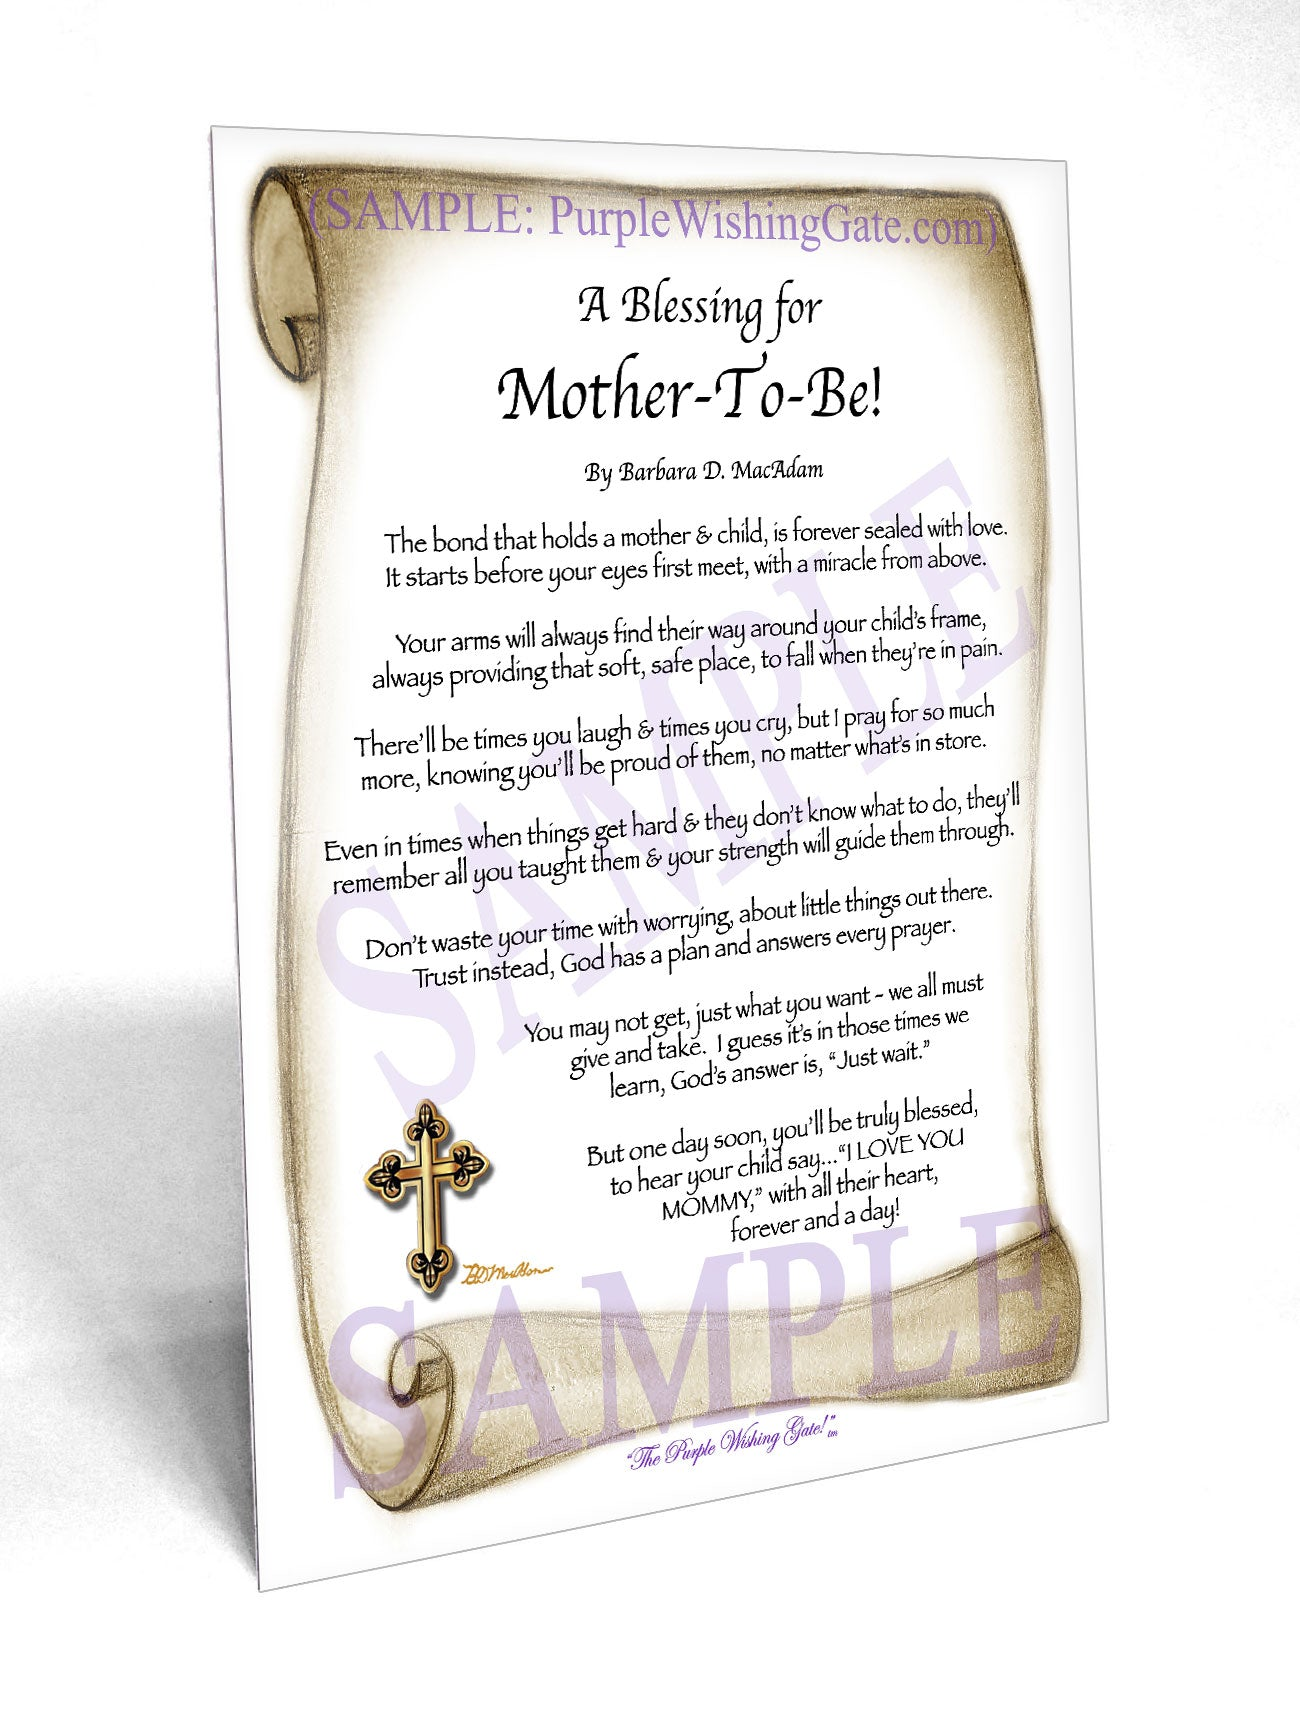 A Blessing for Mother-To-Be! - Gifts for Mom-Mother - PurpleWishingGate.com